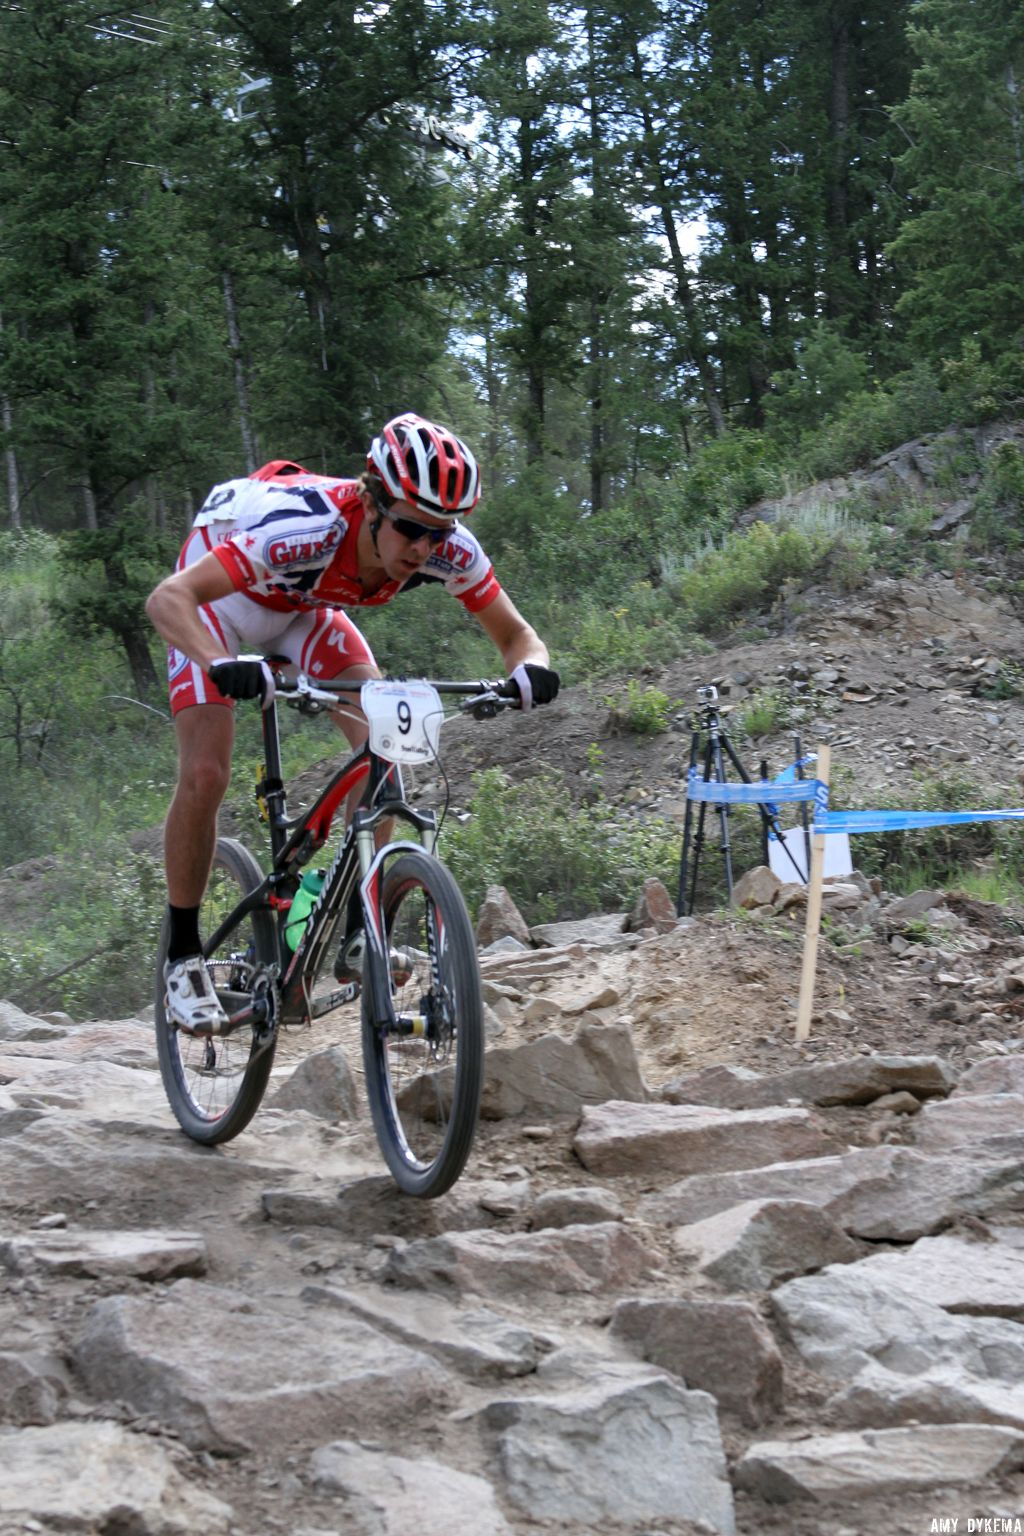 Nick Weighall (34th) of Cal Giant in the rock drop. ©Amy Dykema